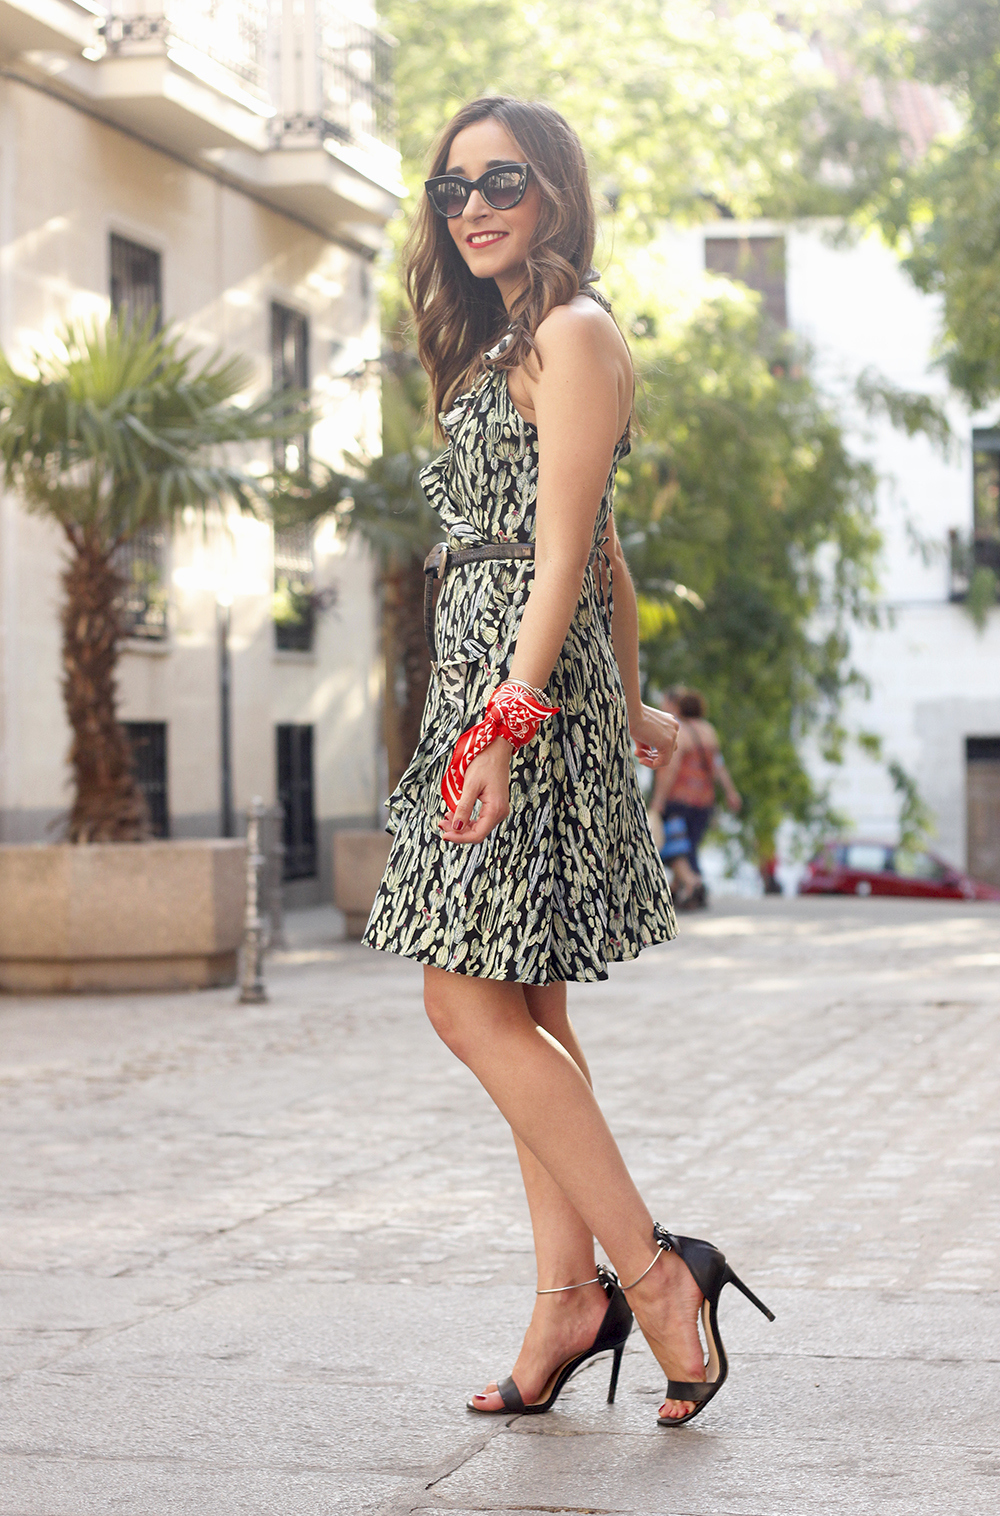 summer dress with cactus prints black sandals sunnies outfit style 15